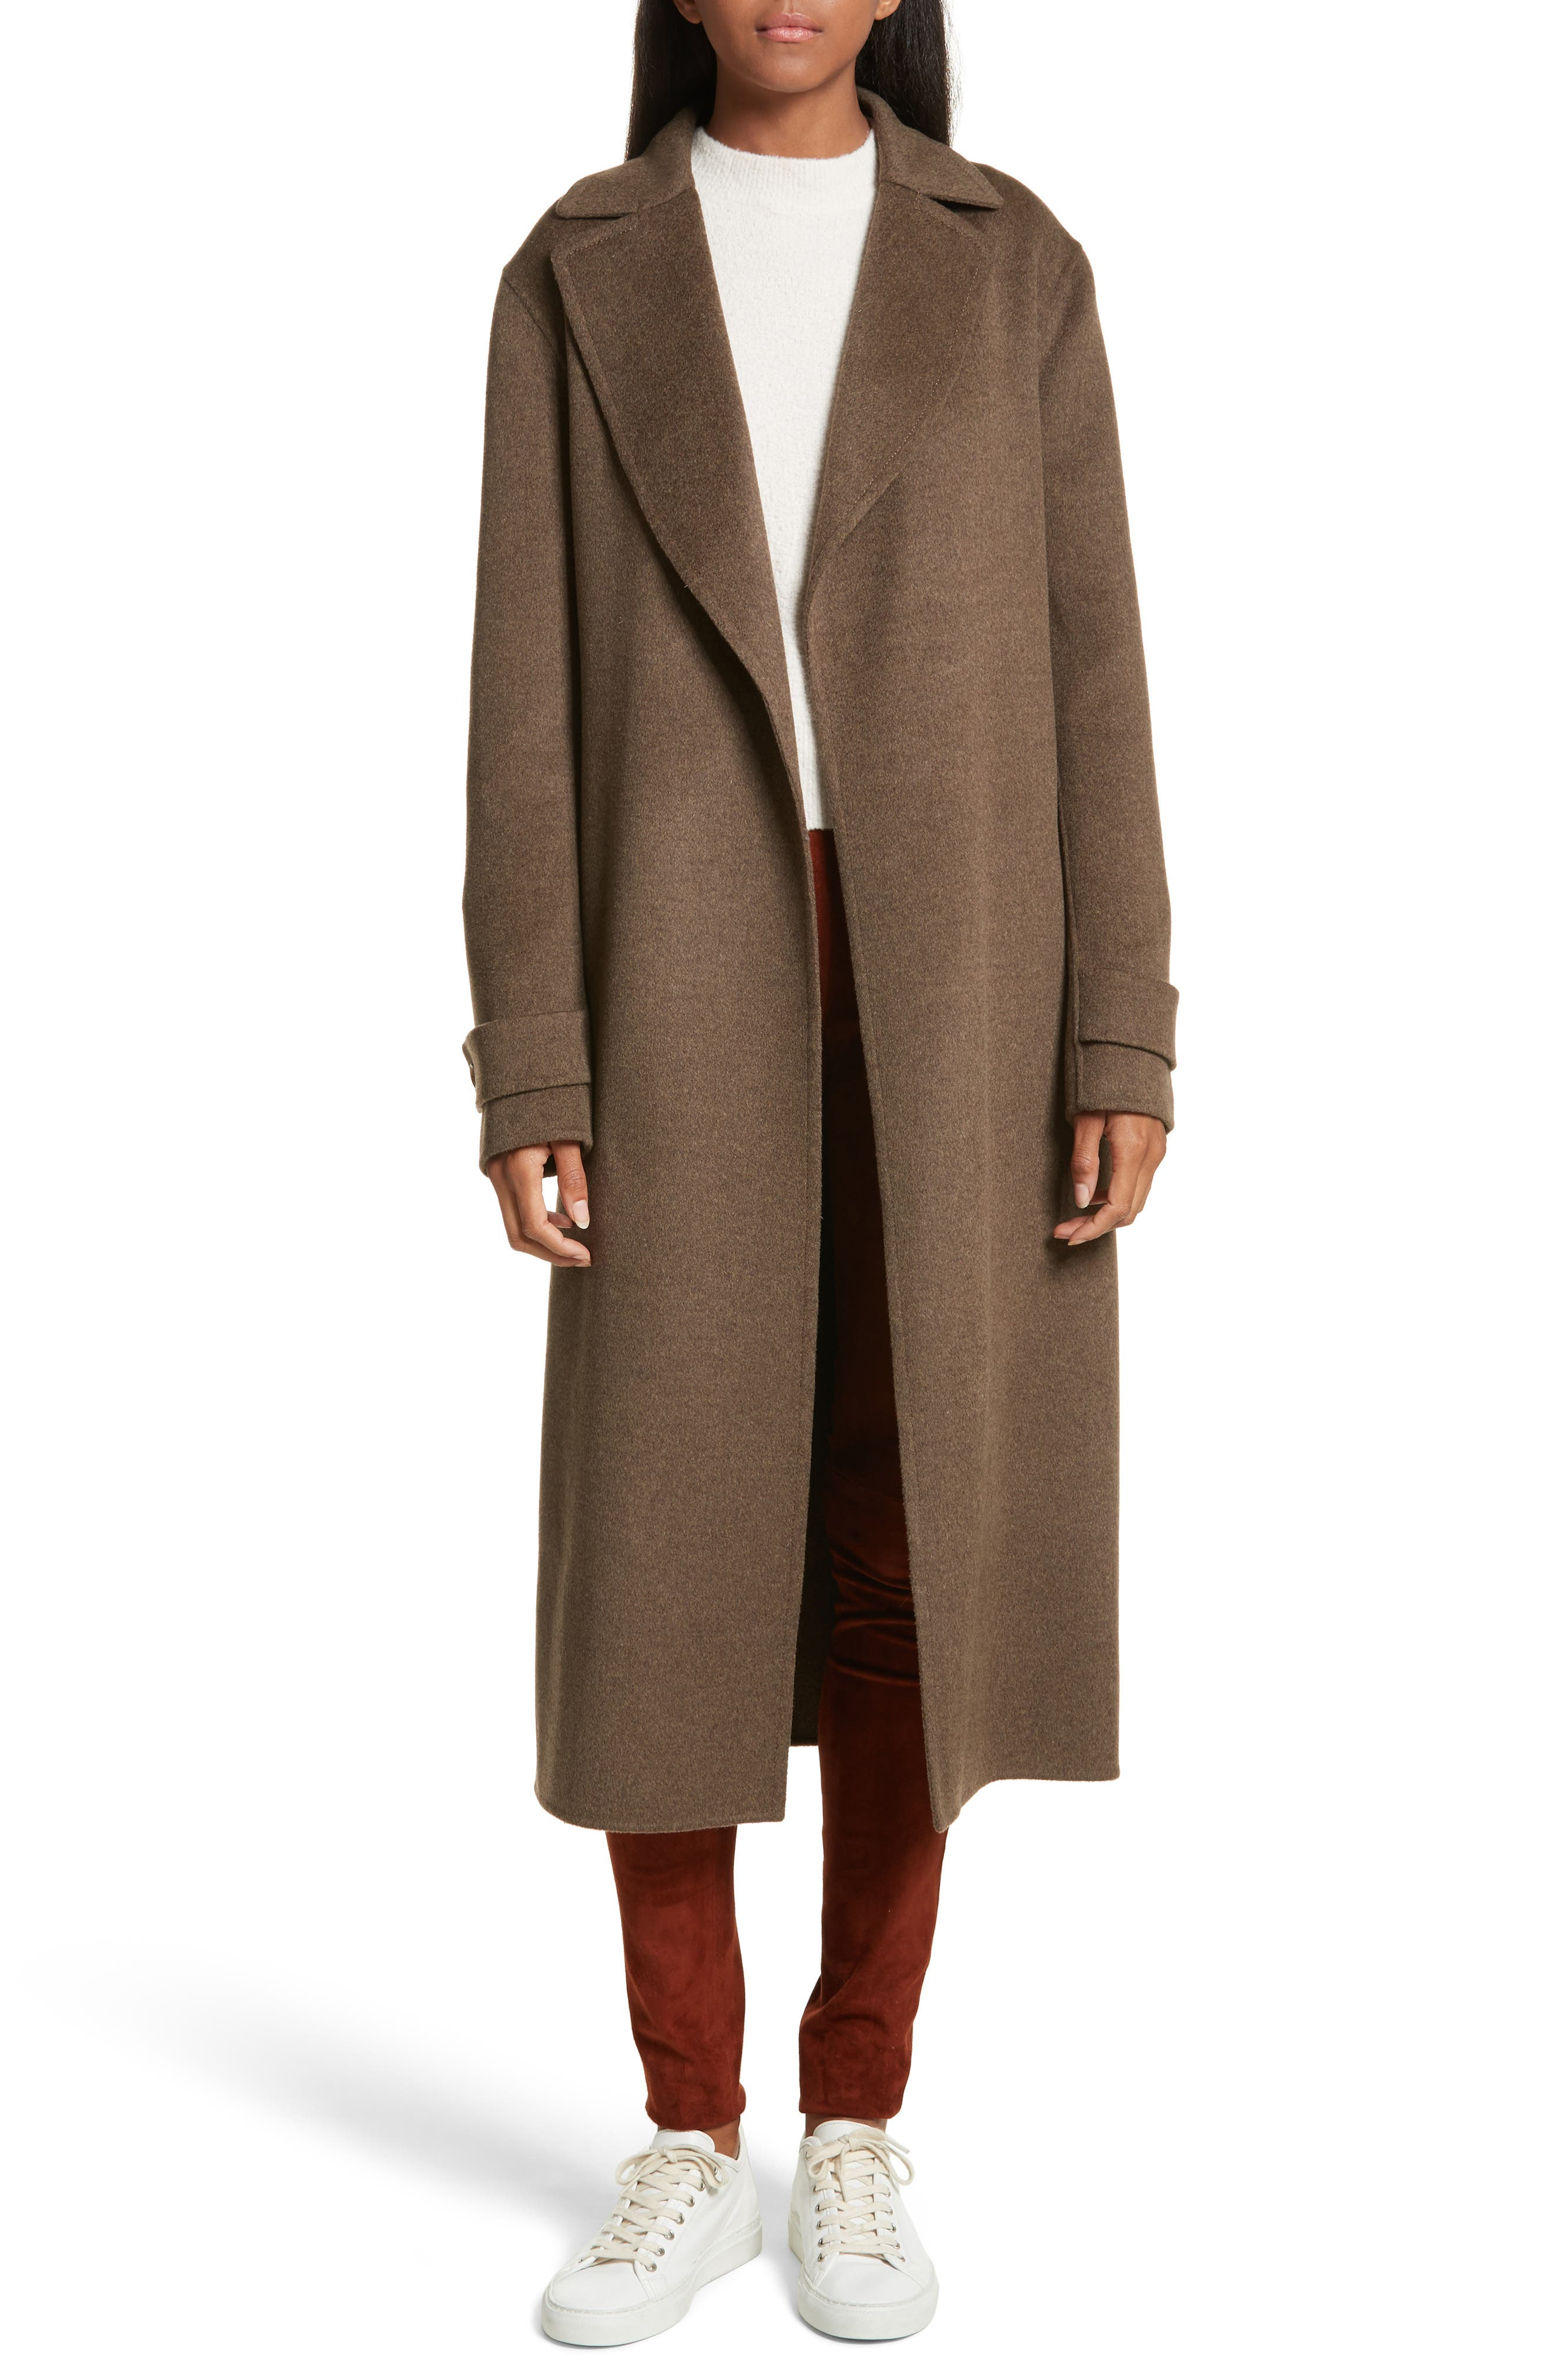 Dale Double-Face Wool & Cashmere Coat,                             Main thumbnail 1, color,                             Military